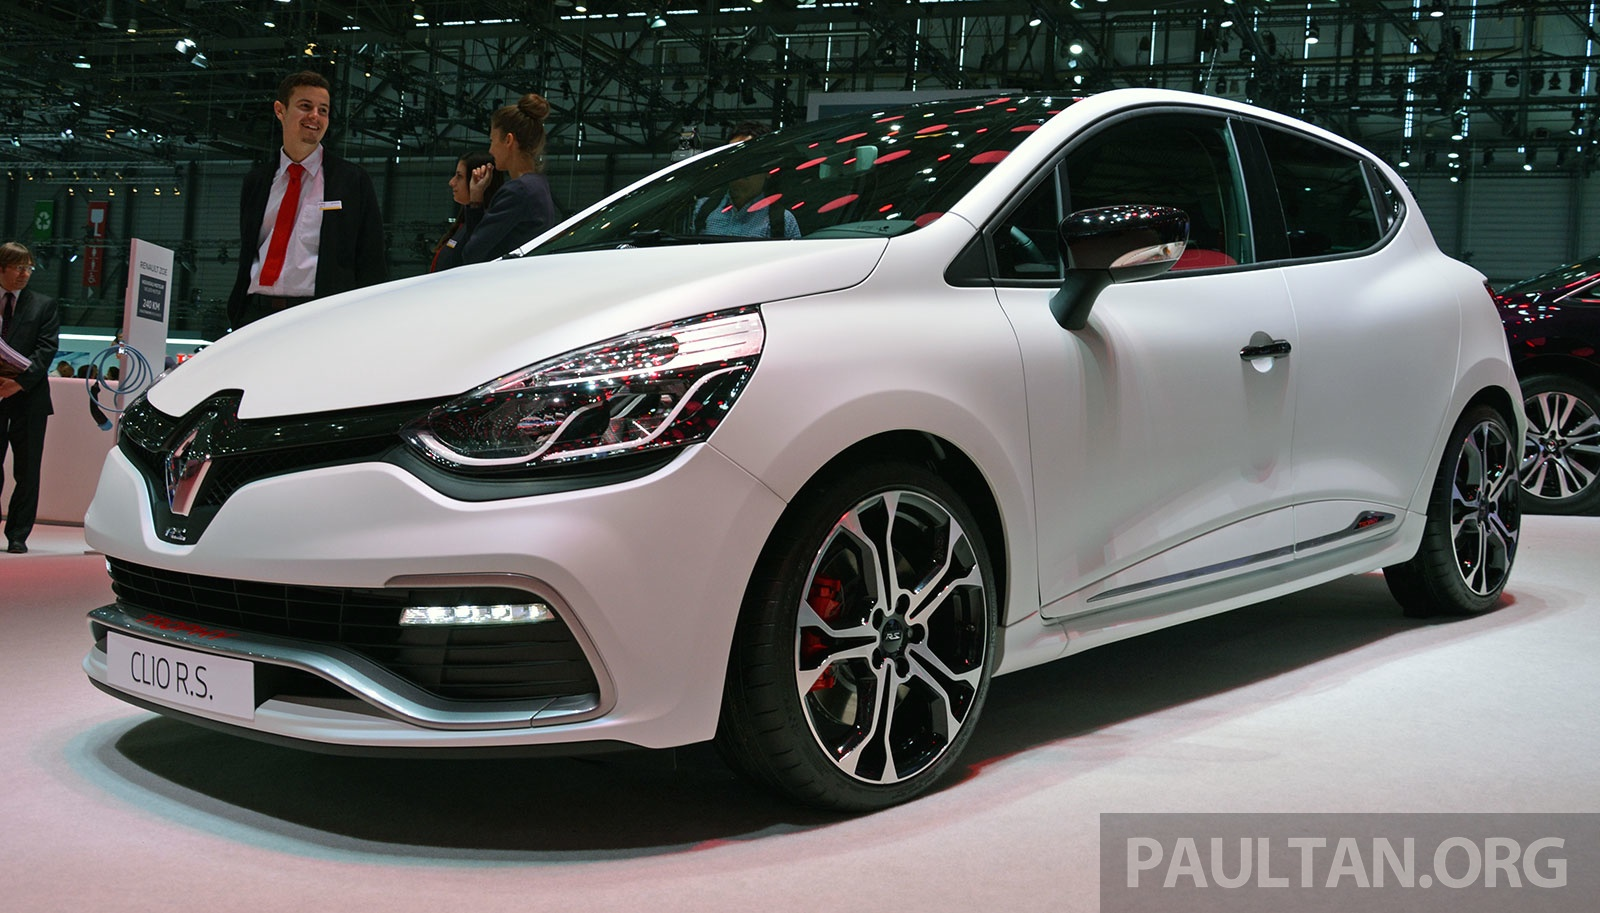 renault clio rs 220 trophy 220 hp faster gearbox image. Black Bedroom Furniture Sets. Home Design Ideas